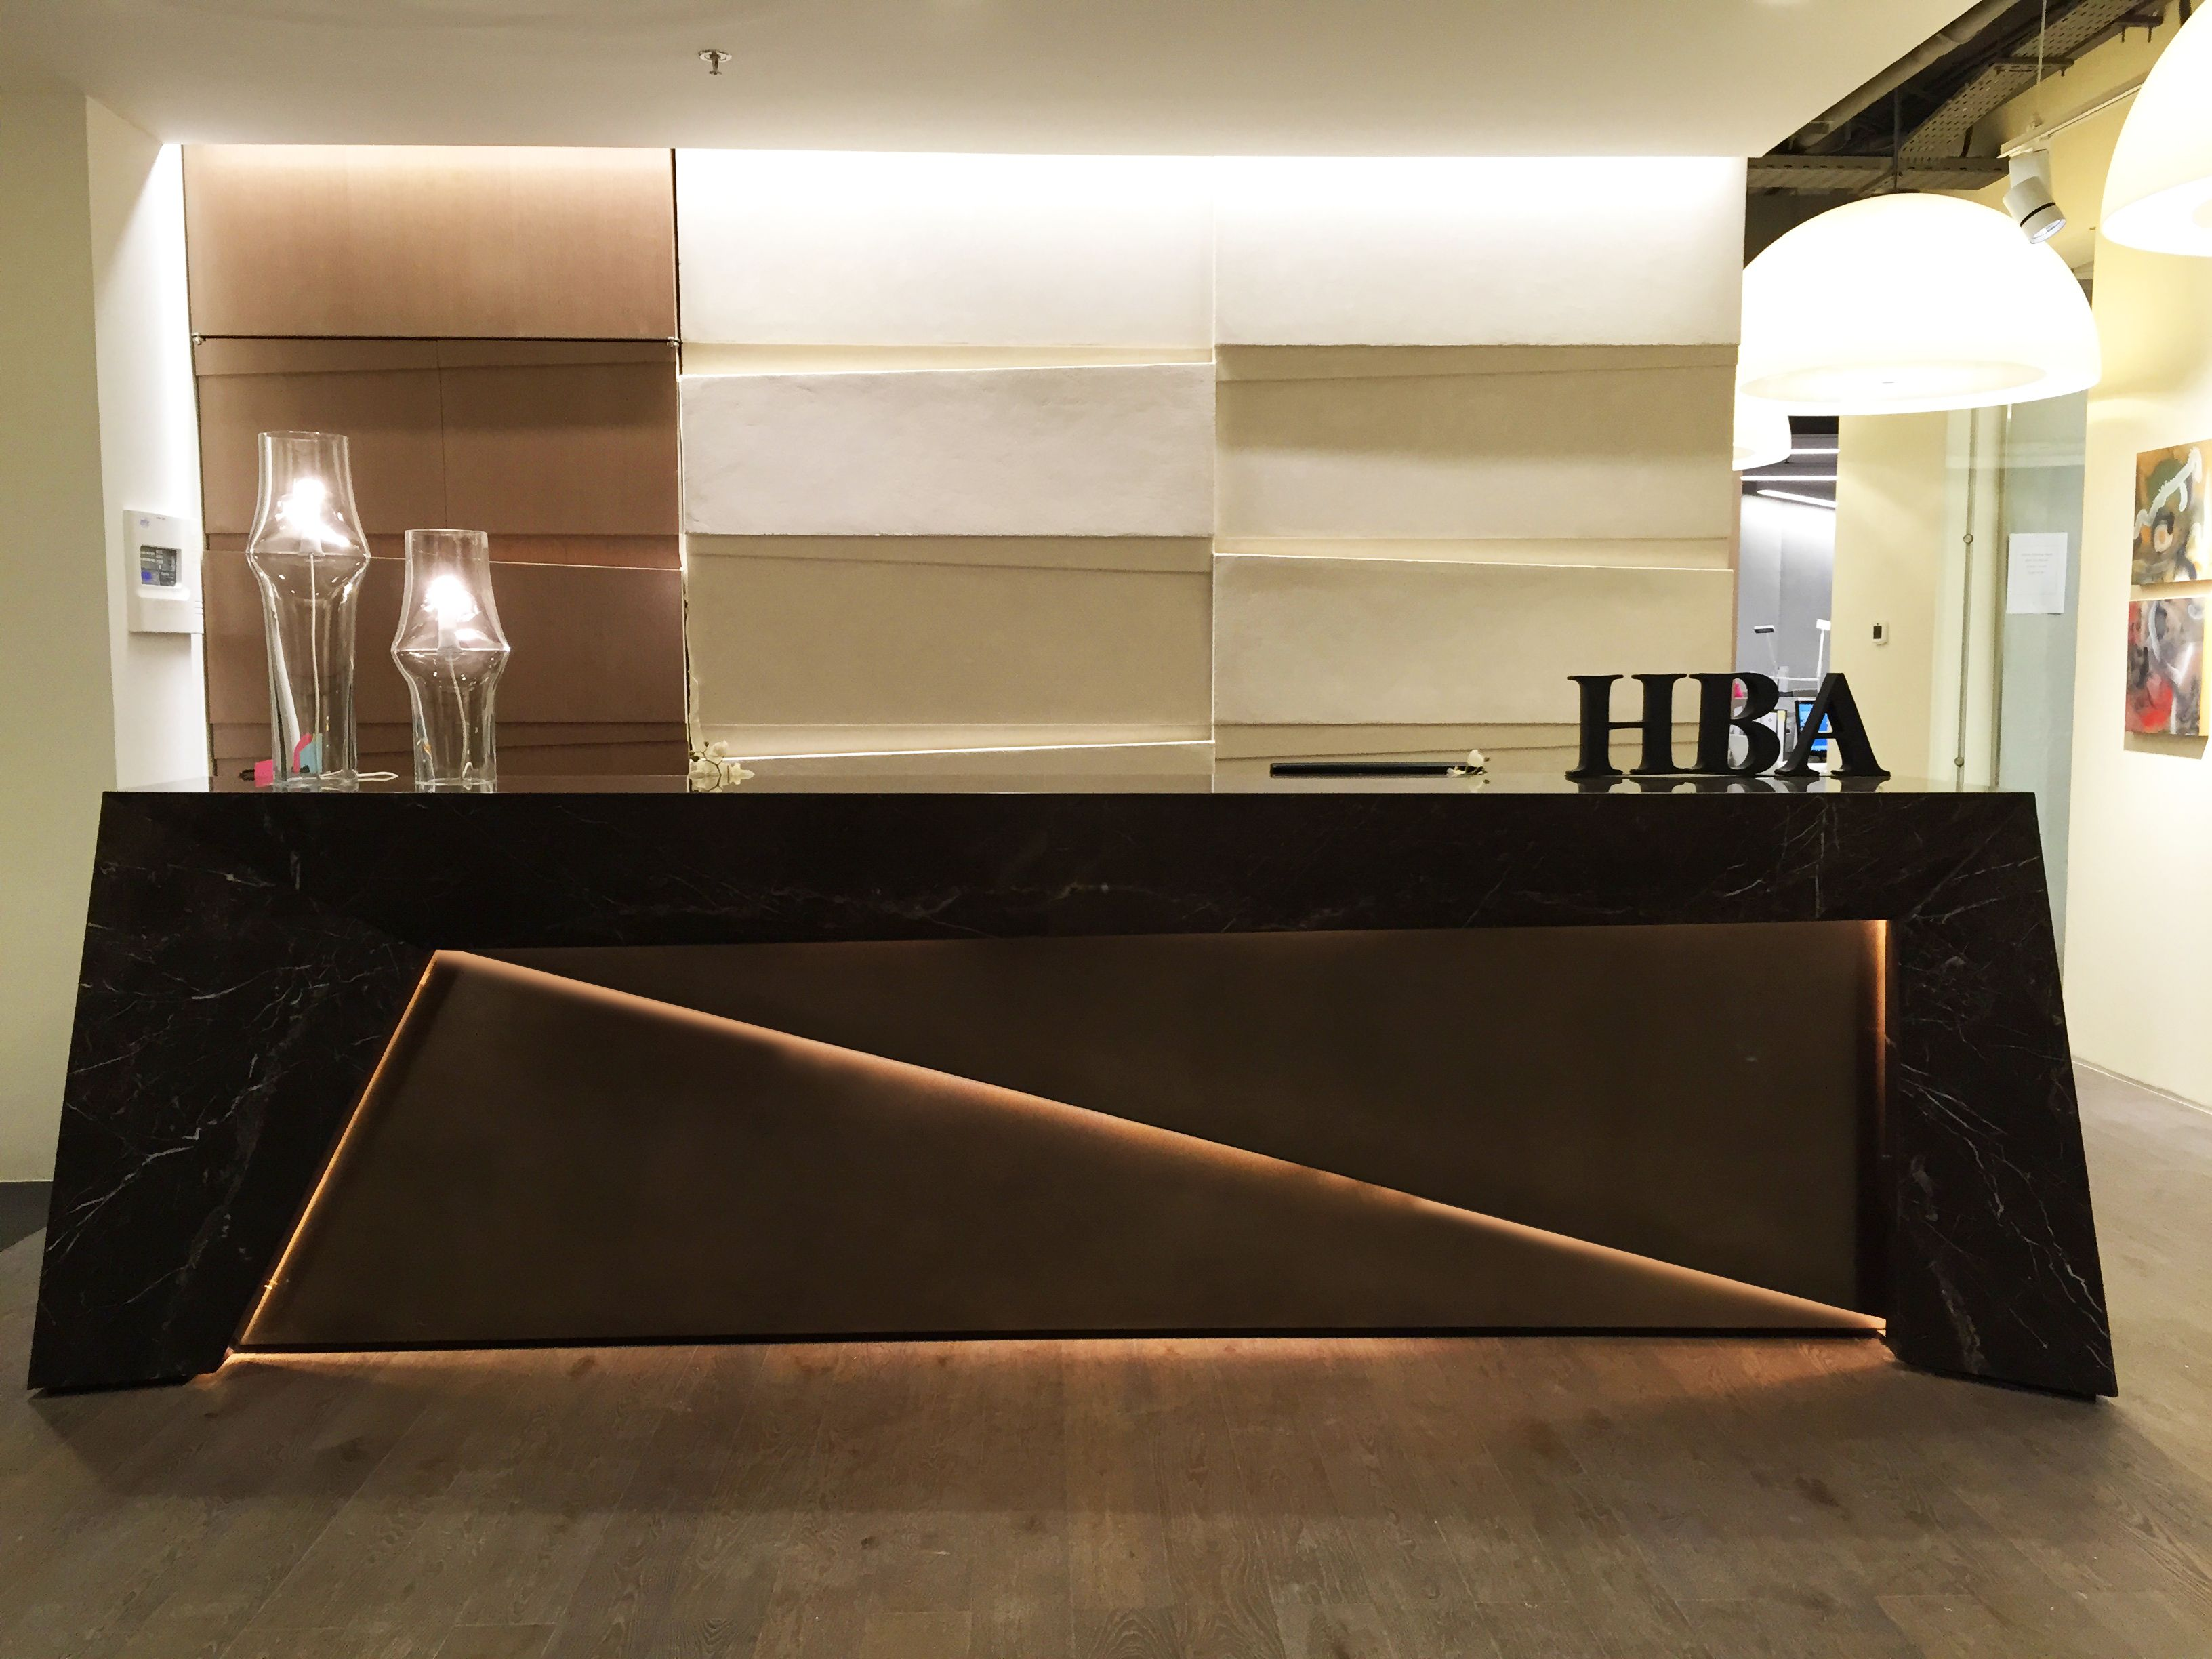 Hba Dubai Office Reception Desk And Walls Design By Me Office